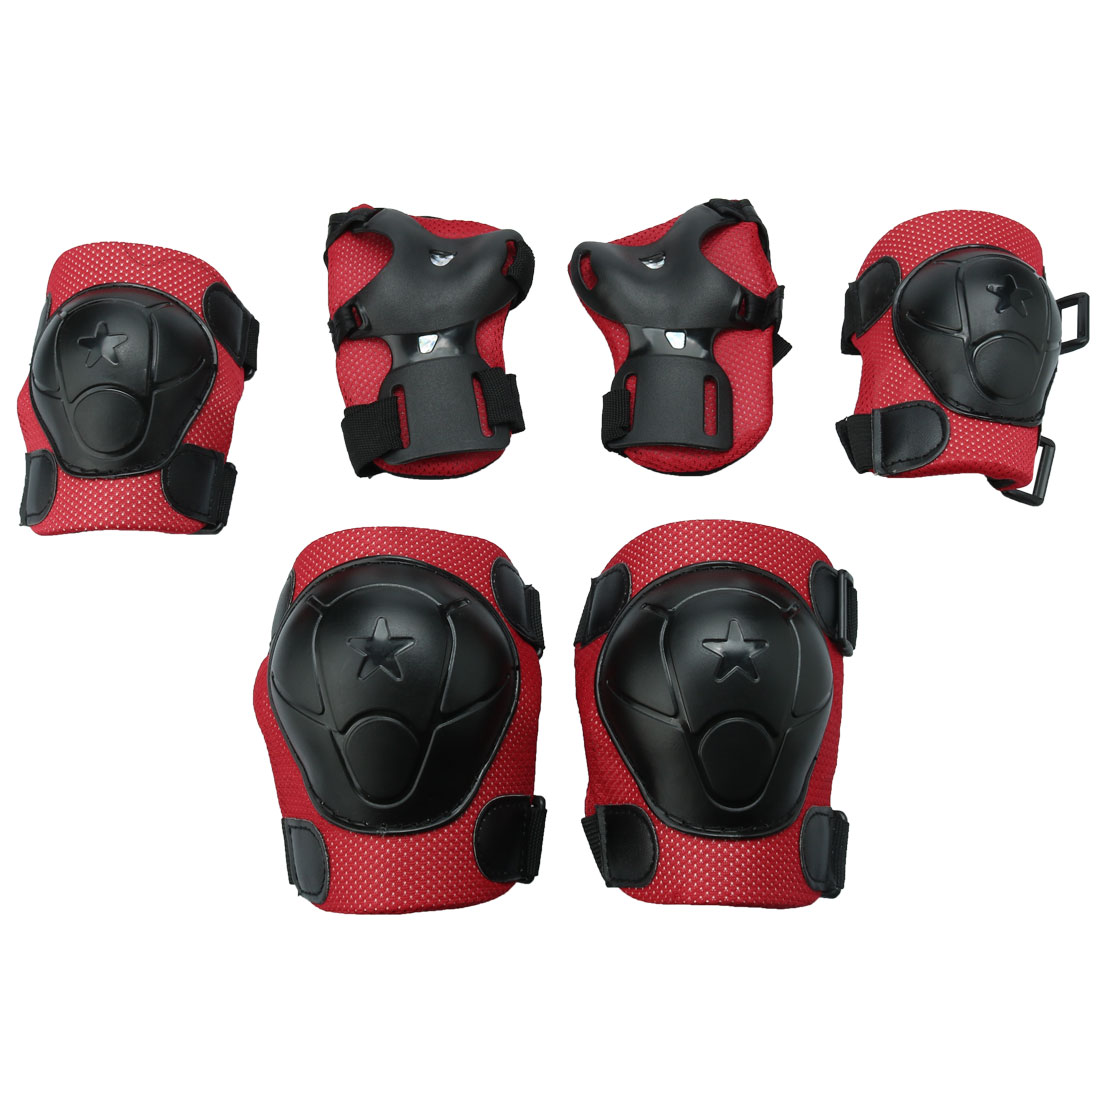 6 in 1 Sports Wrist Elbow Knee Guards Pad Set Protective Gear Roller  Skating Cycling Scooter for